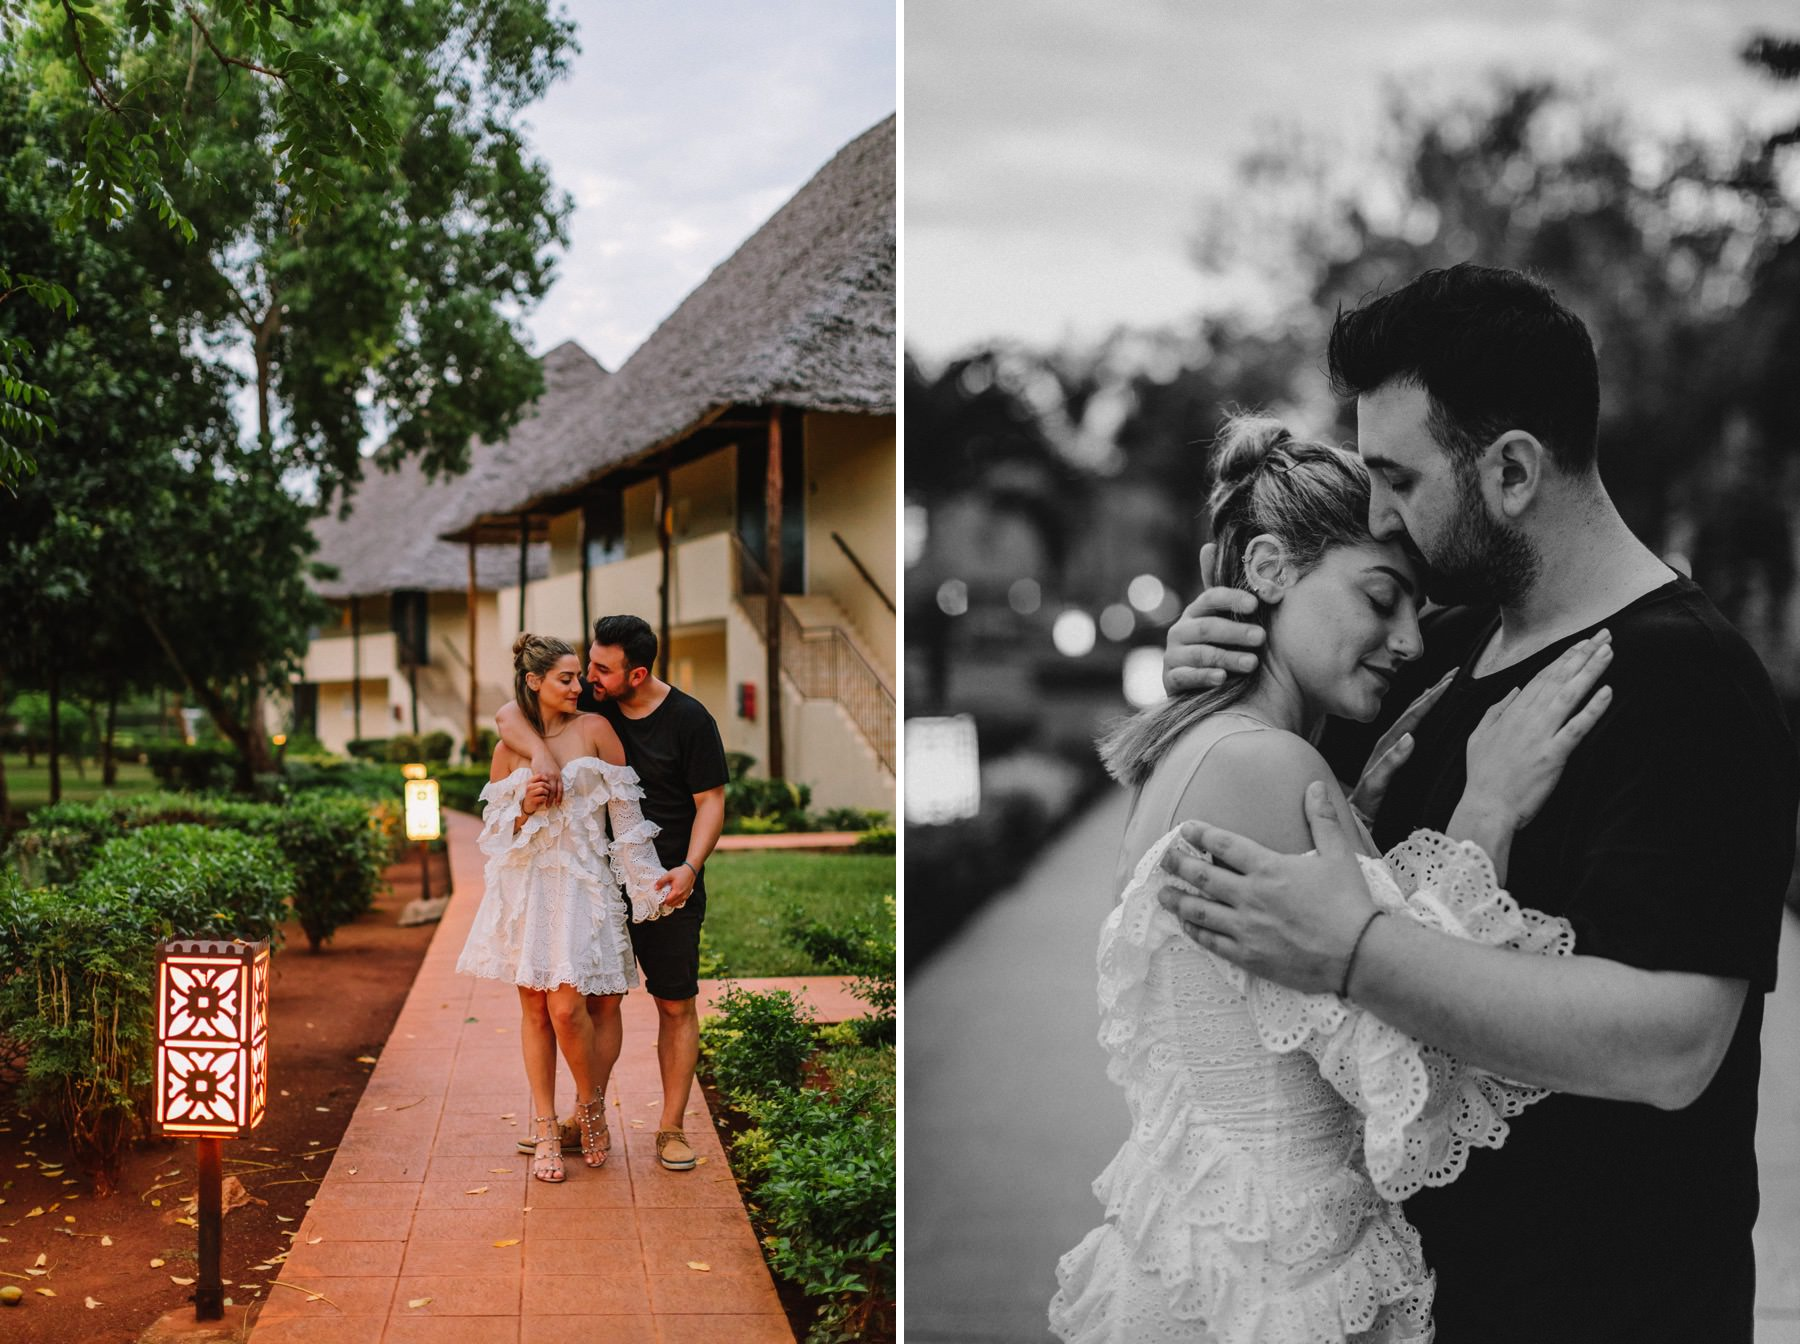 Dreams of Zanzibar wedding